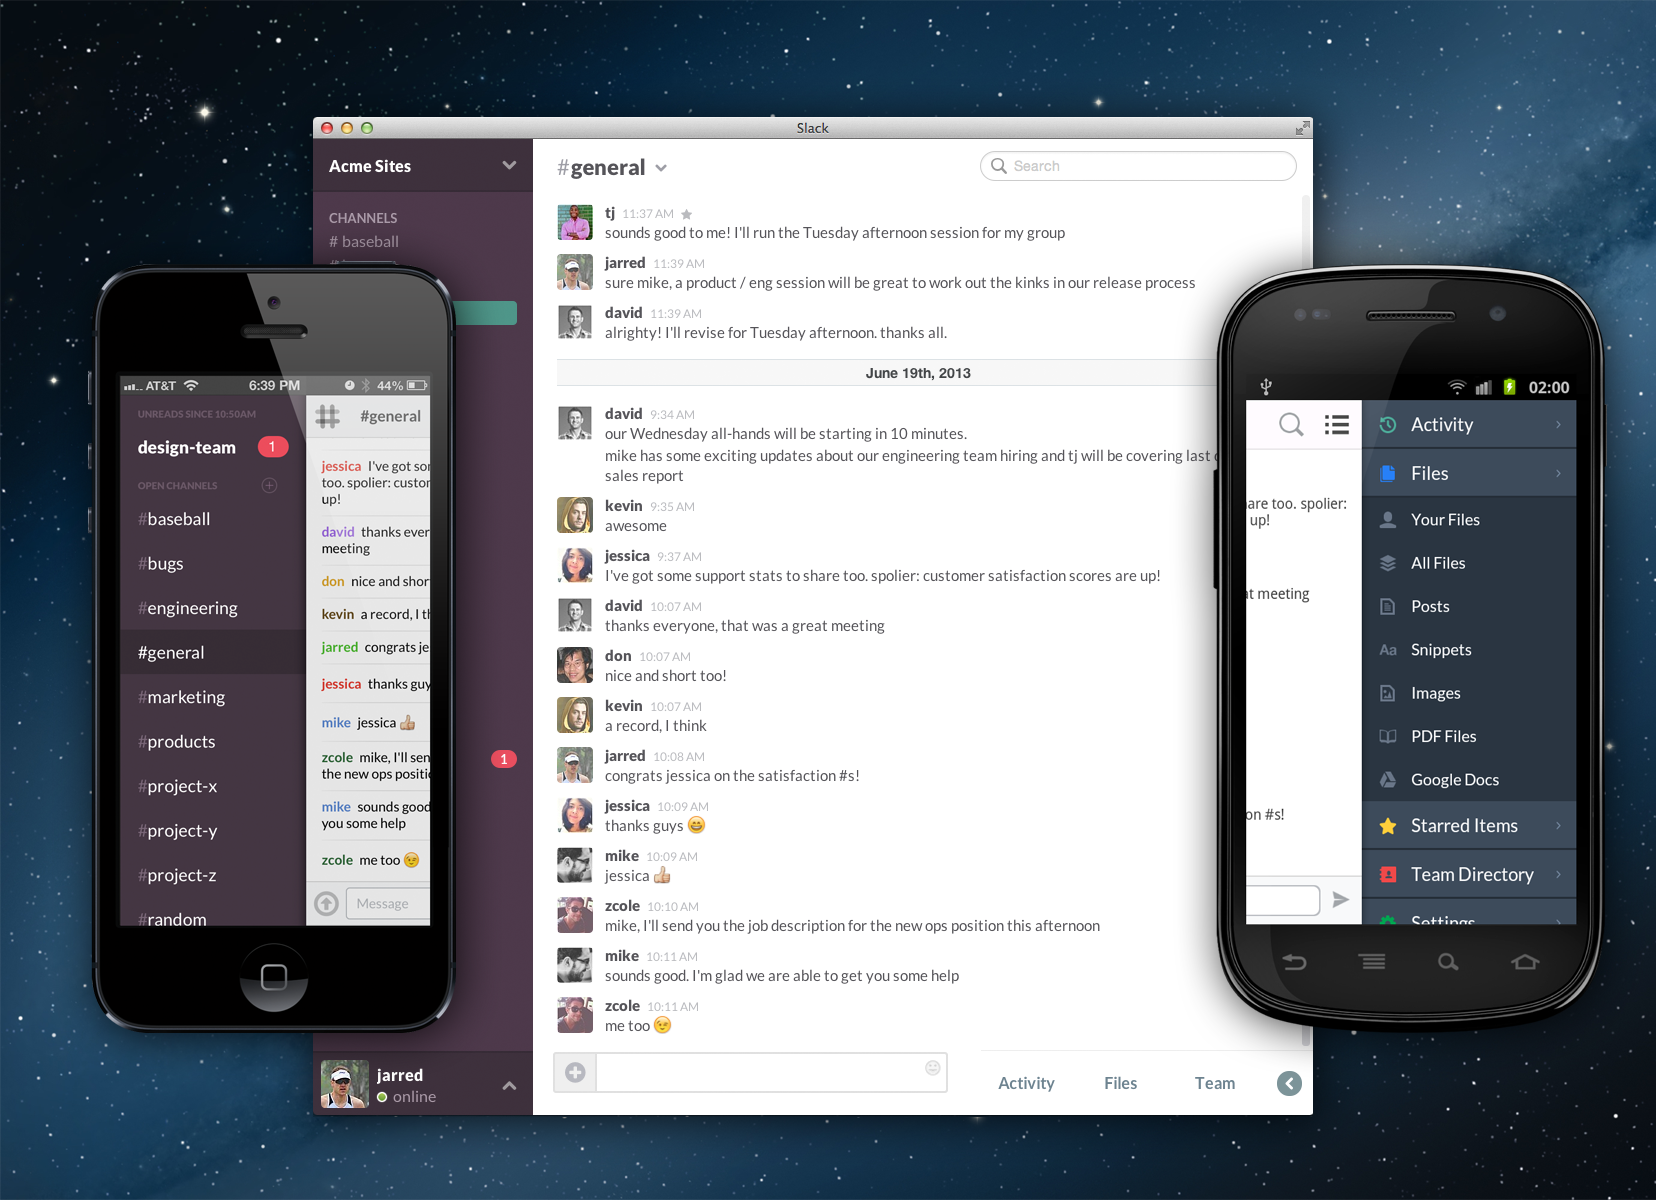 Flickr Co-Founder Stewart Butterfield Turns to Workplace Communication Tools With Slack